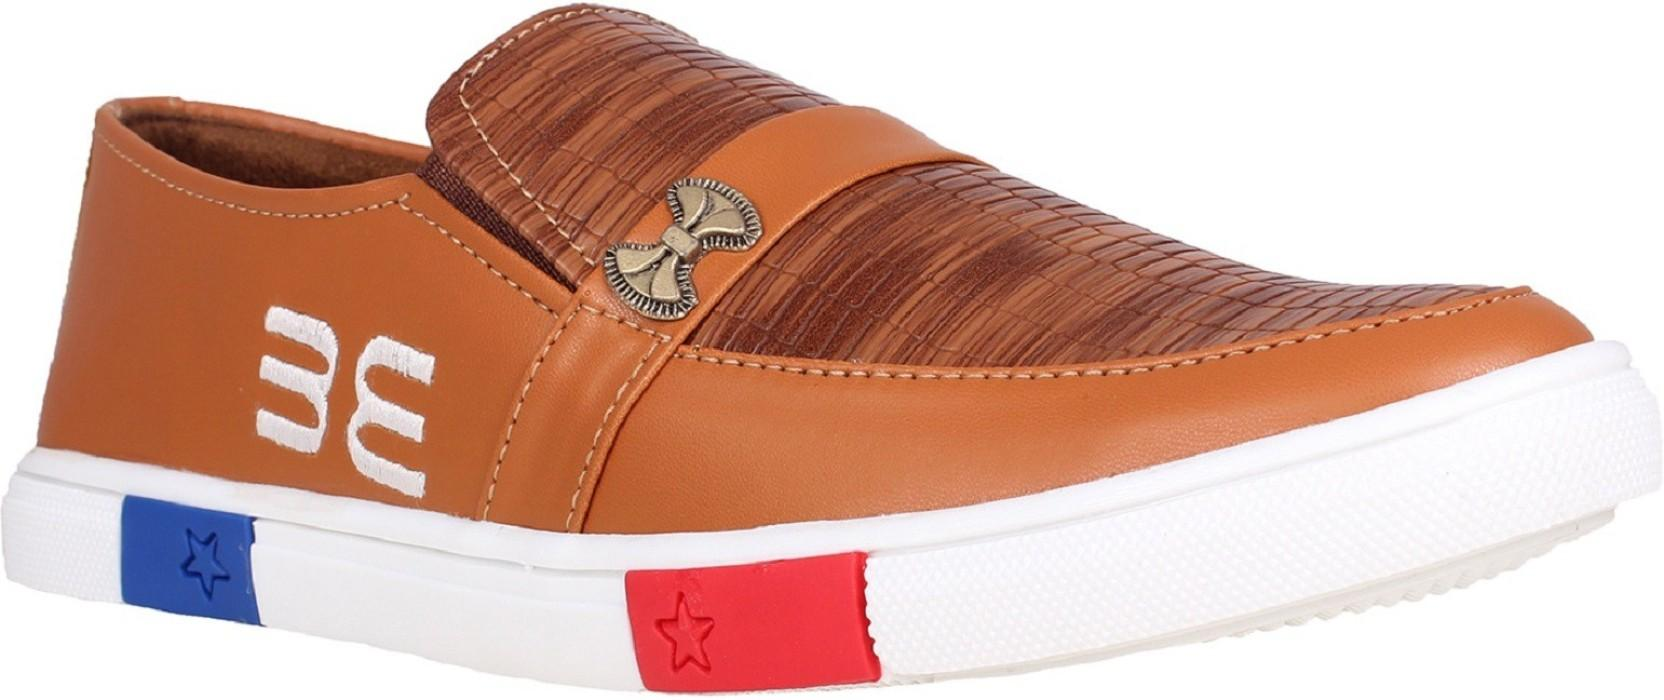 BootEase Sneakers(Tan)